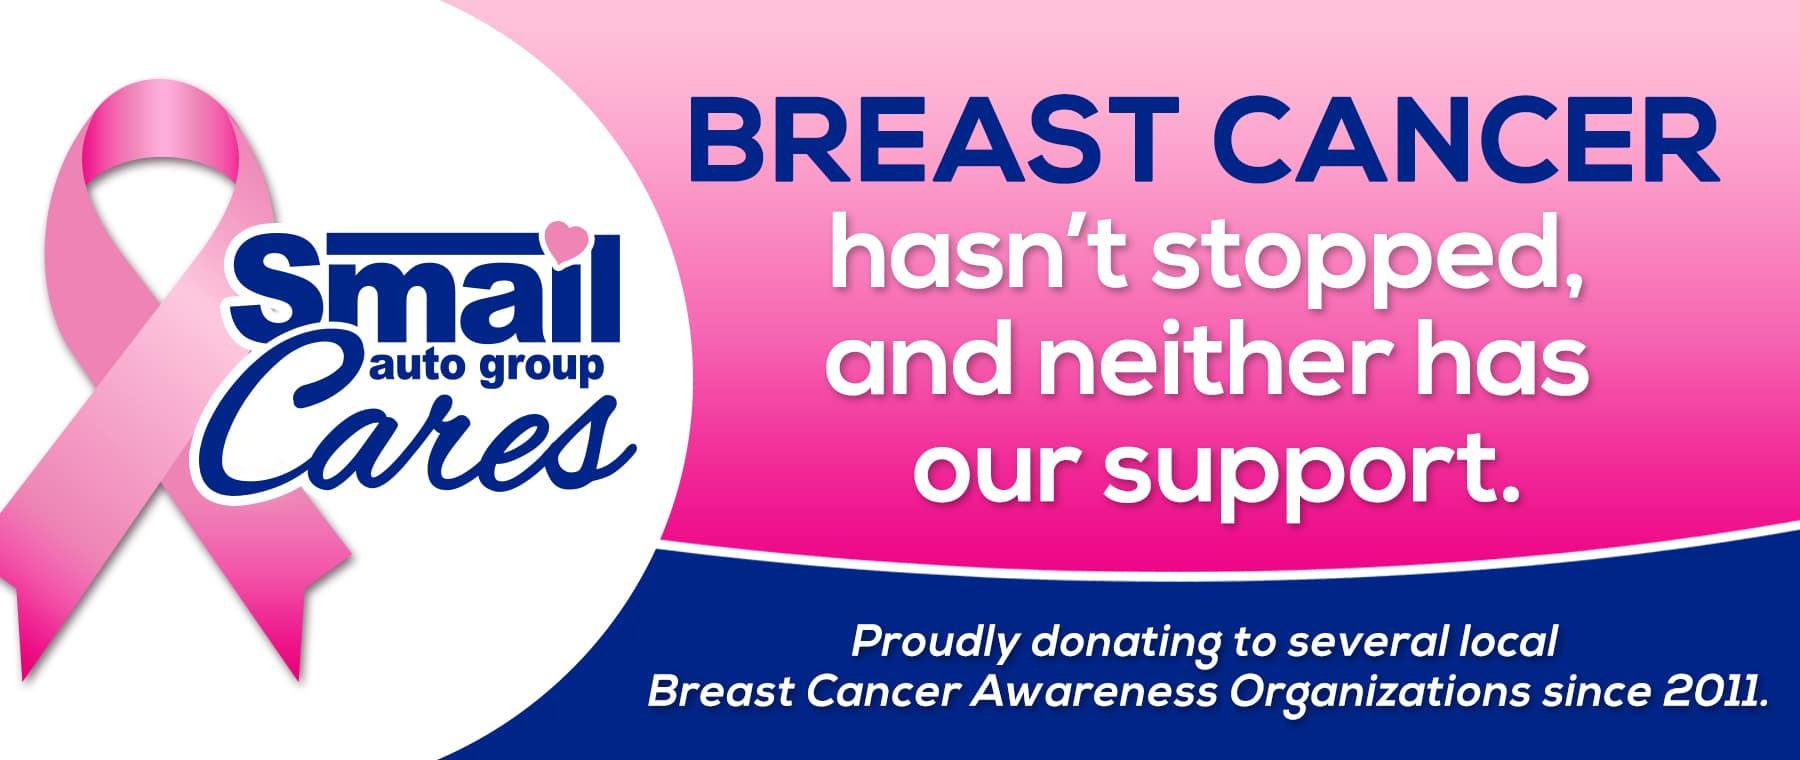 Breast Cancer hasn't stopped and neither has our support